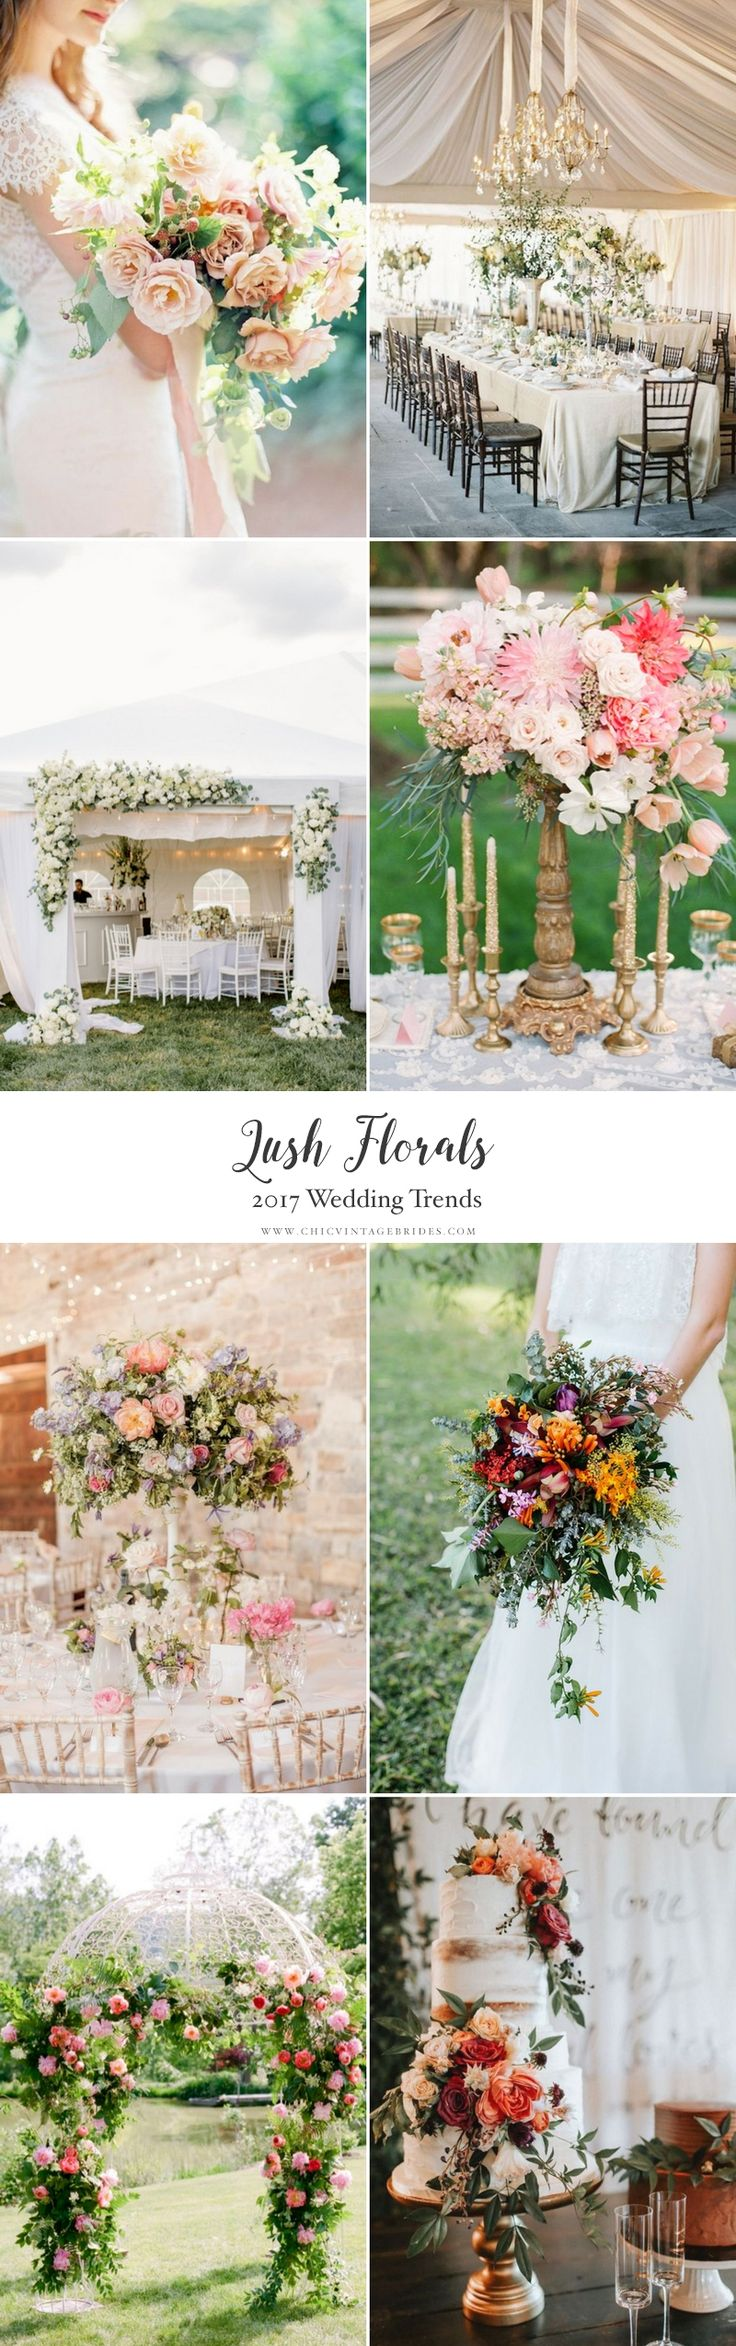 Top Wedding Trends 2017 - Lush Florals